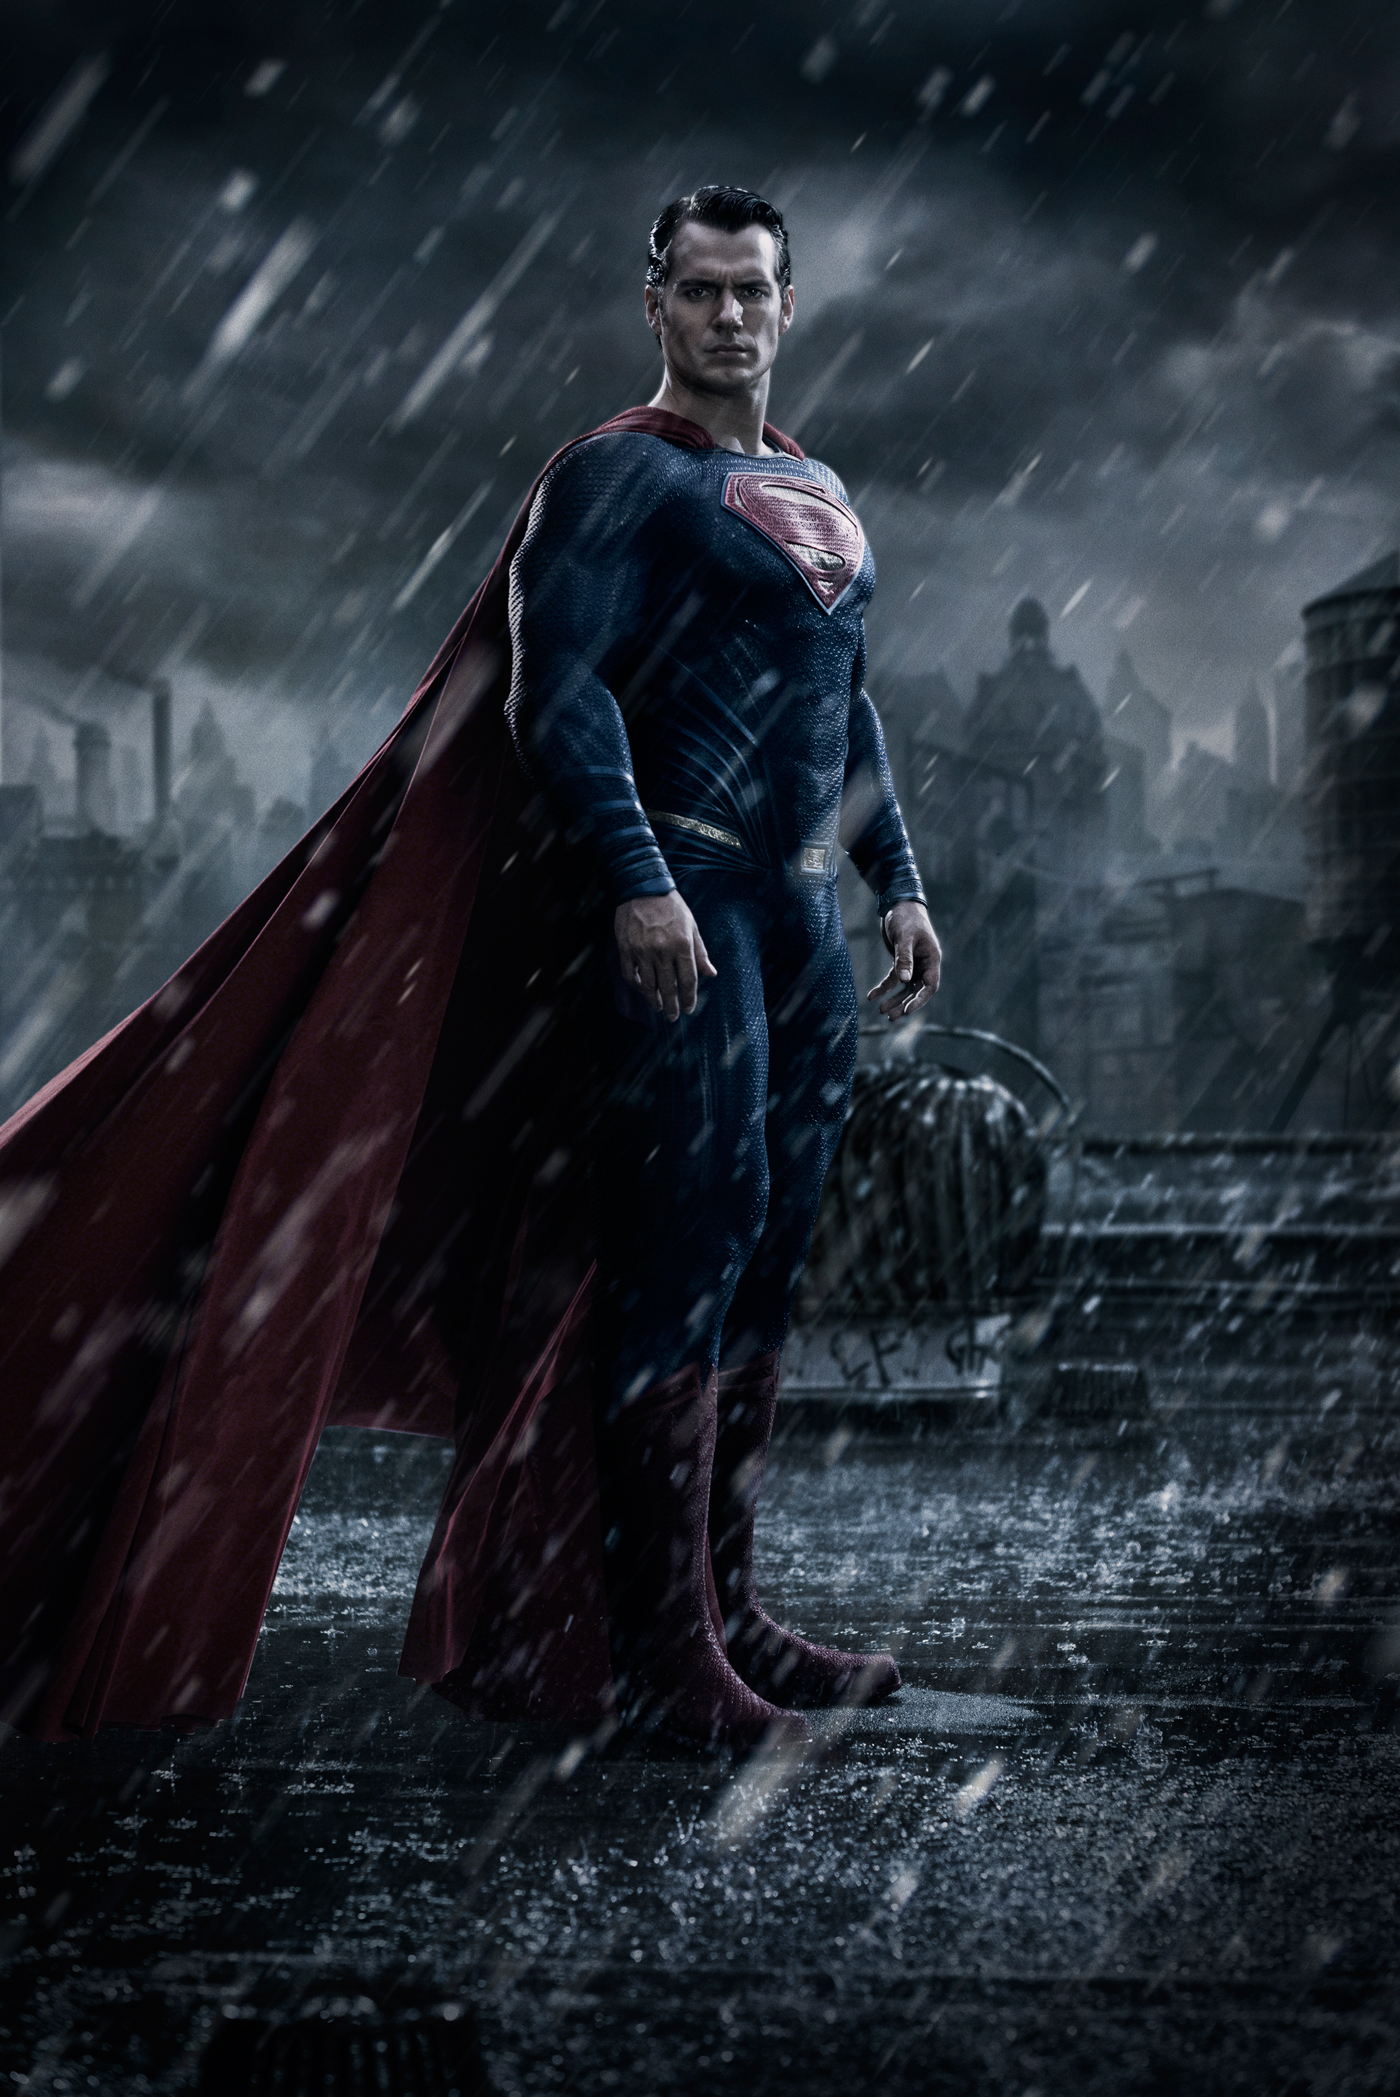 Henry Cavill as Superman from Batman Vs Superman – first image